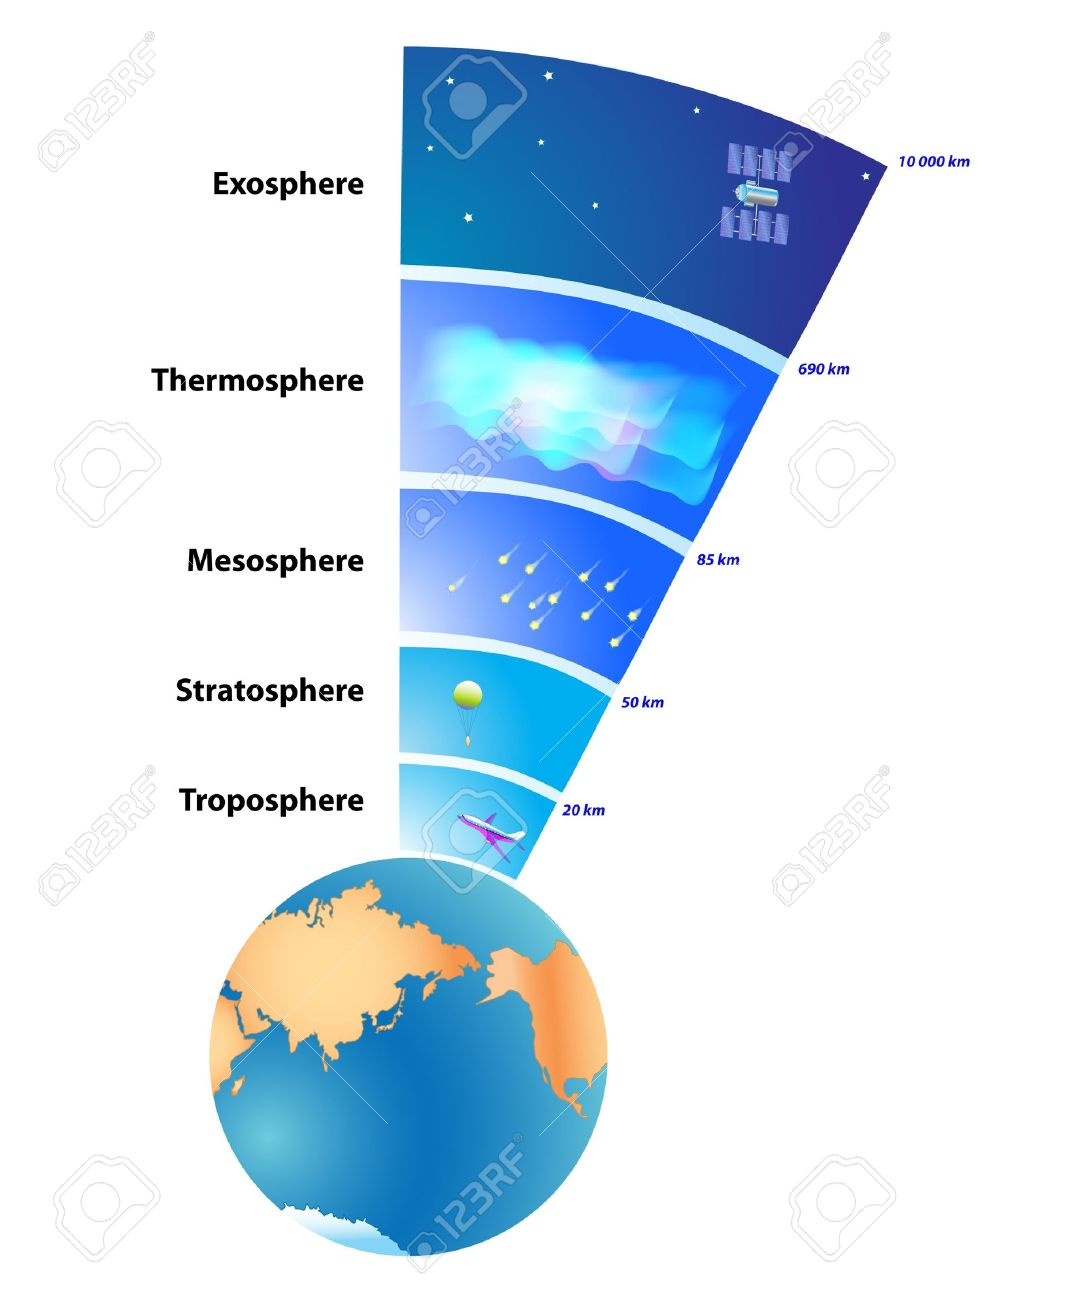 The Earth and on emaze.